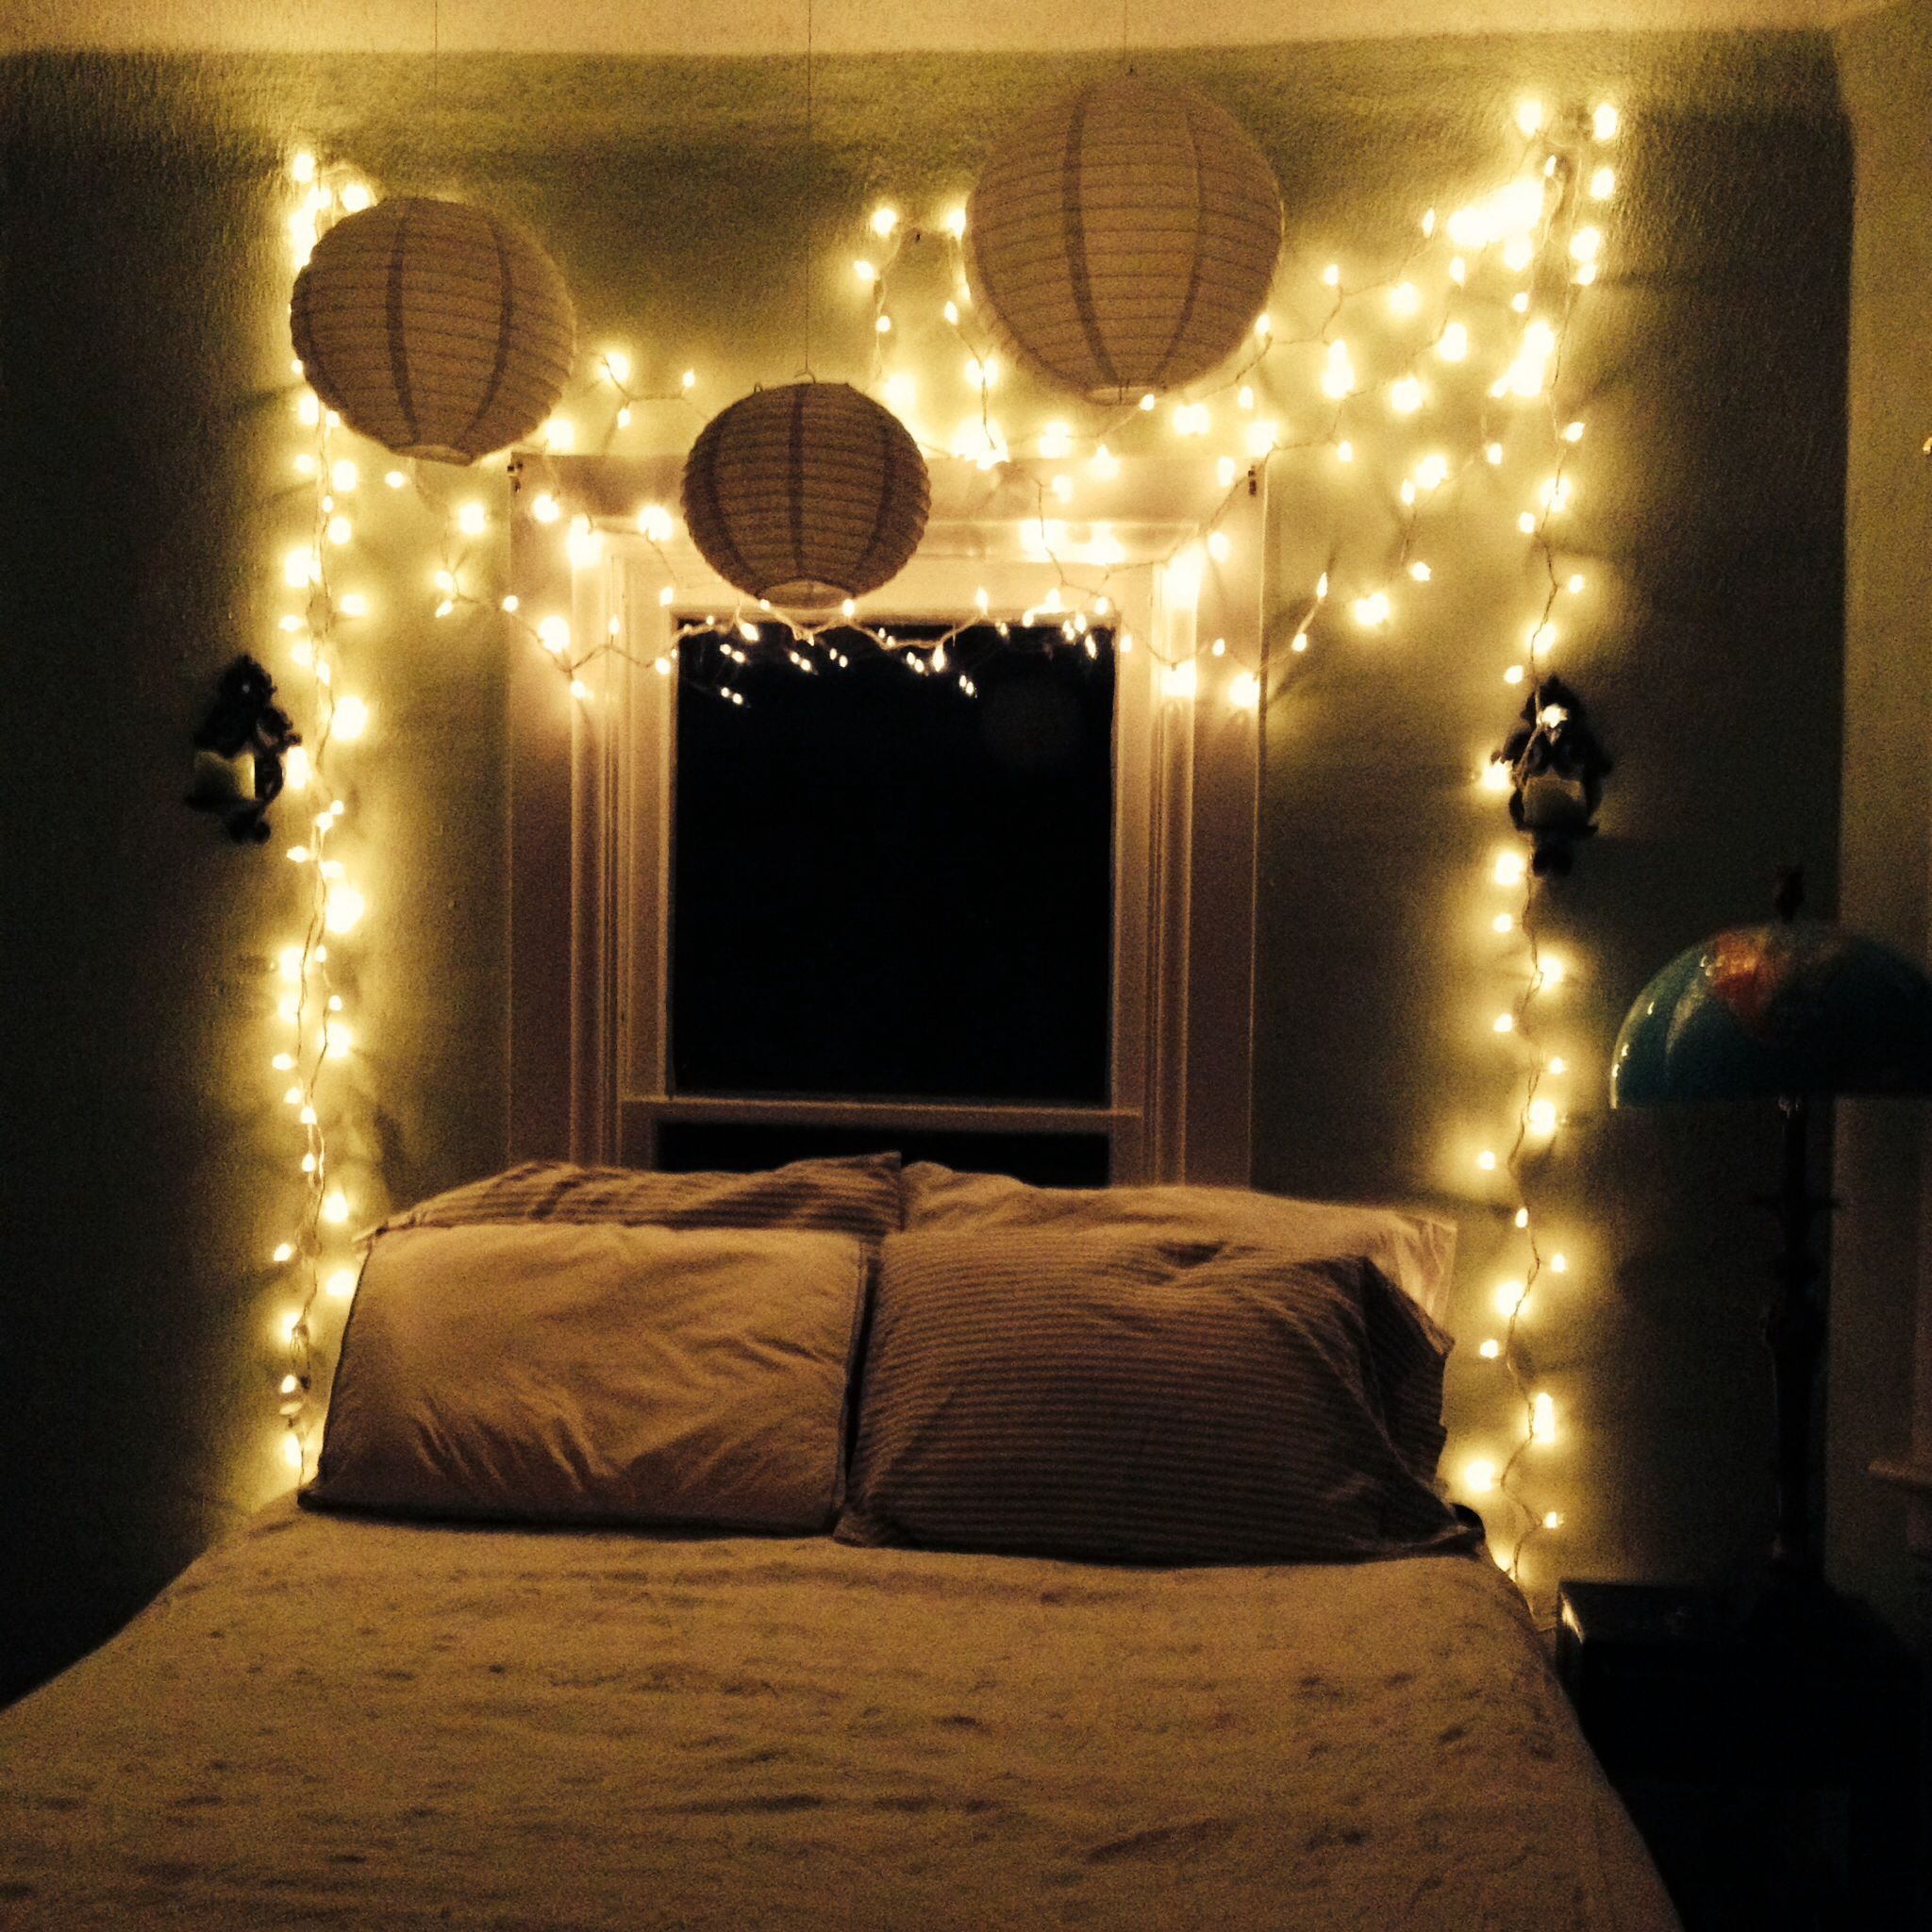 Indoor christmas lights for bedroom - My Bedroom Oasis Twinkle Lights White And Stripes